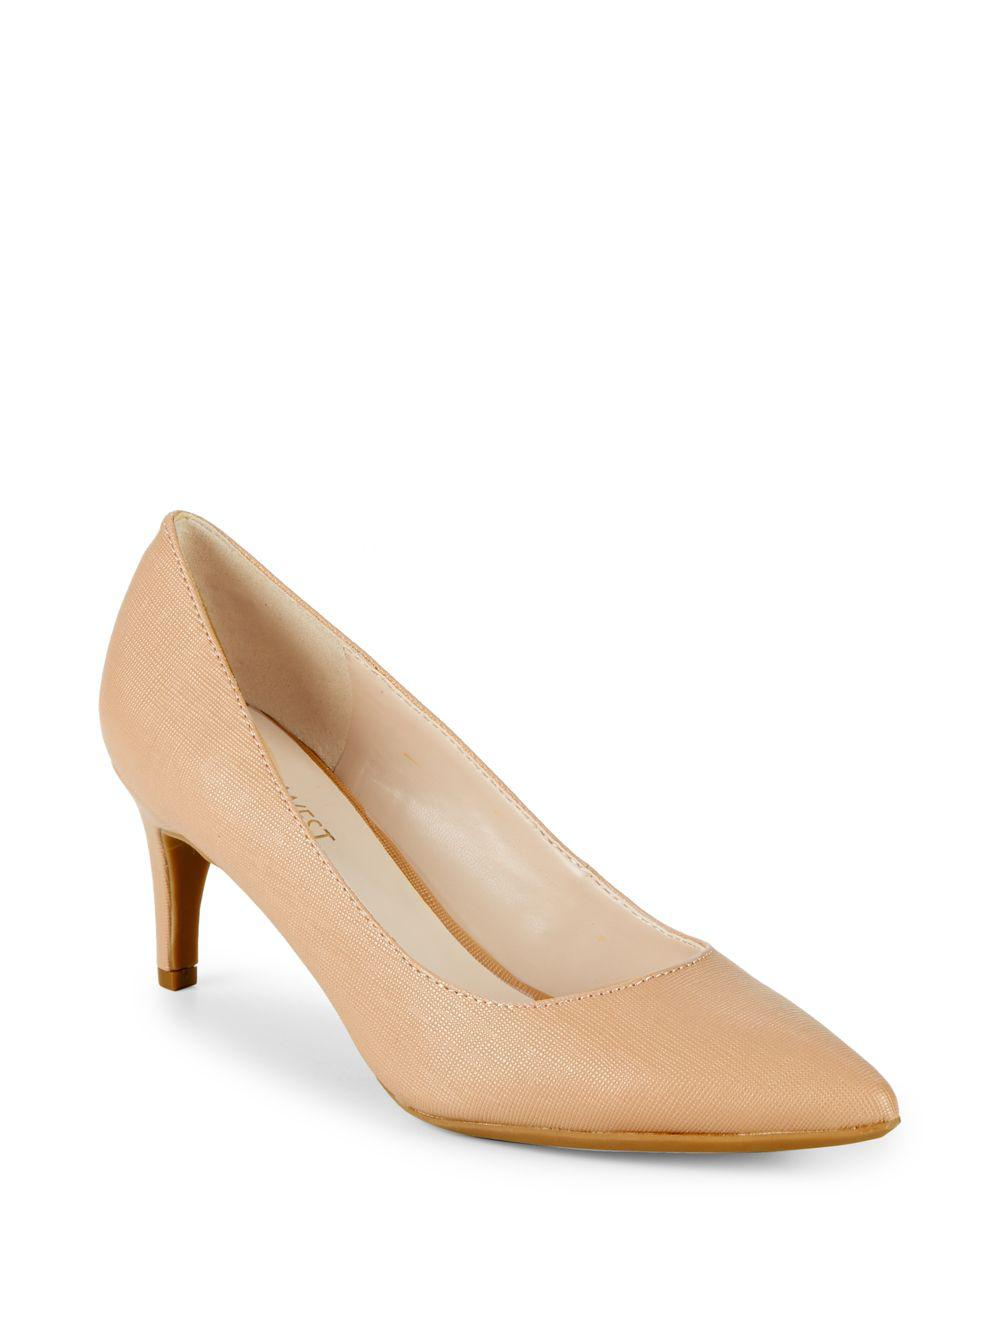 d4446ce8b5ac Lyst - Nine West Stiletto Heel Point Toe Pumps in Natural